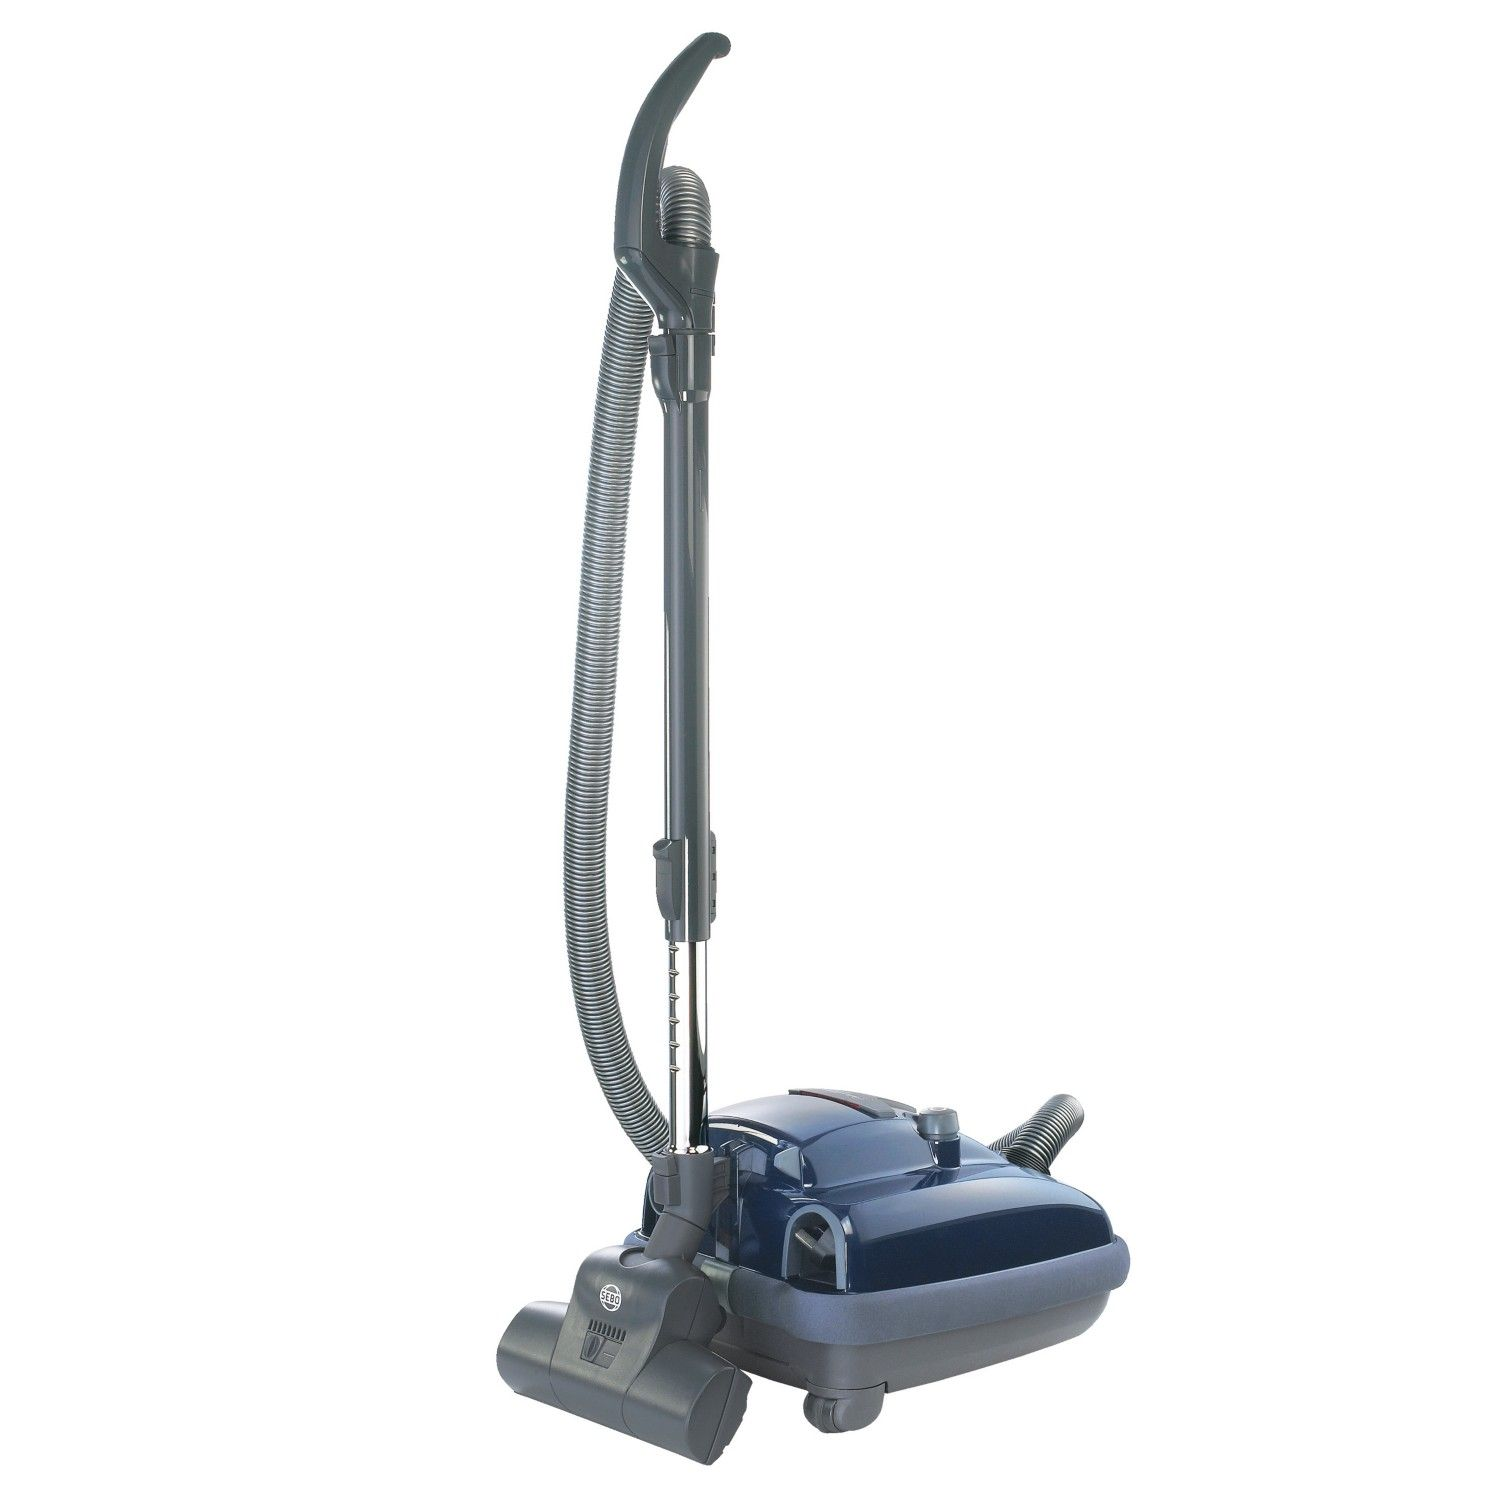 Sebo Airbelt K1 Komfort Vacuum Cleaner The Practicality And Powerful 1200 Watt Motor Of The Sebo Airbelt K1 Ko Vacuum Cleaner Best Vacuum Janitorial Cleaning